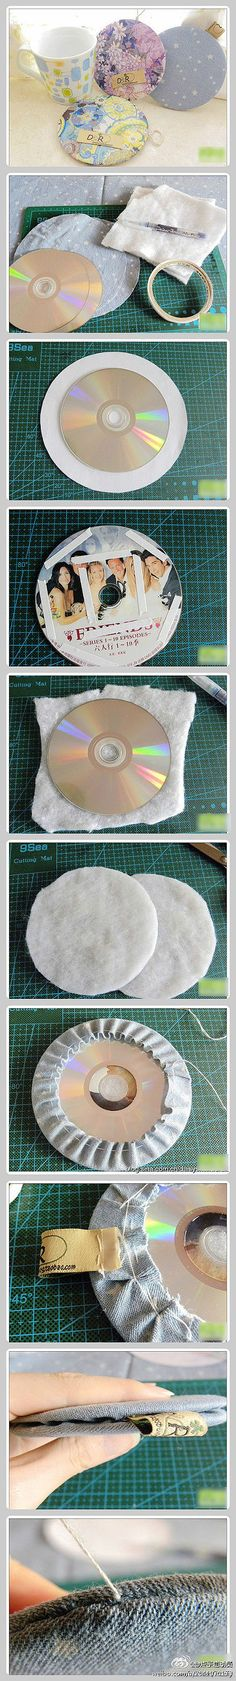 DIY *-*【Crafty Coasters】